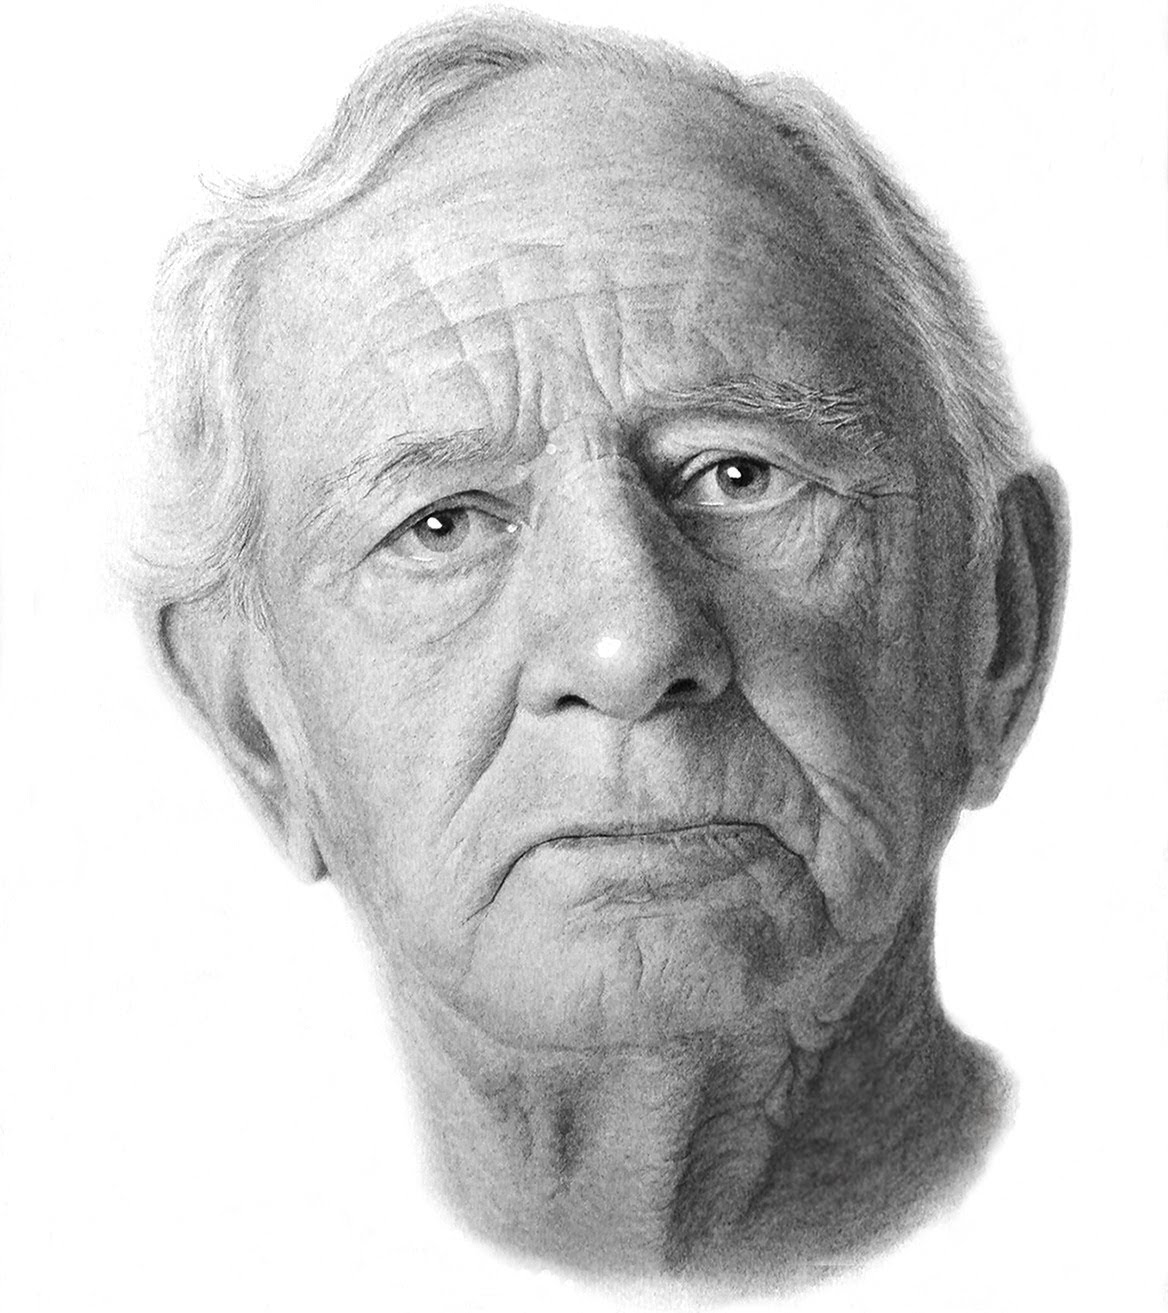 Pencil drawing techniques 3